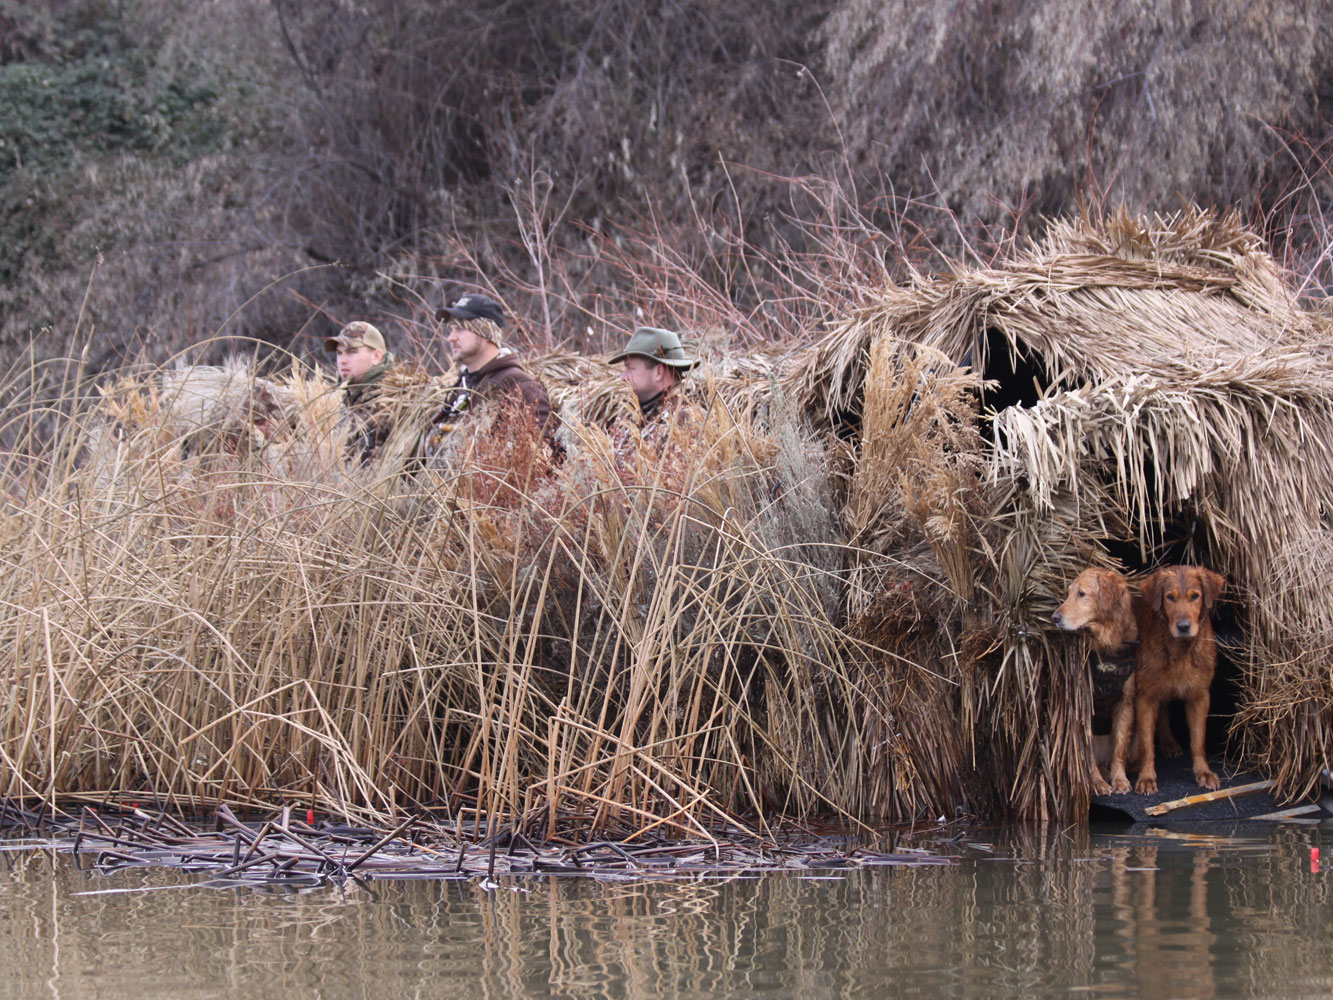 Boat-Blind-Hunting-Dogs